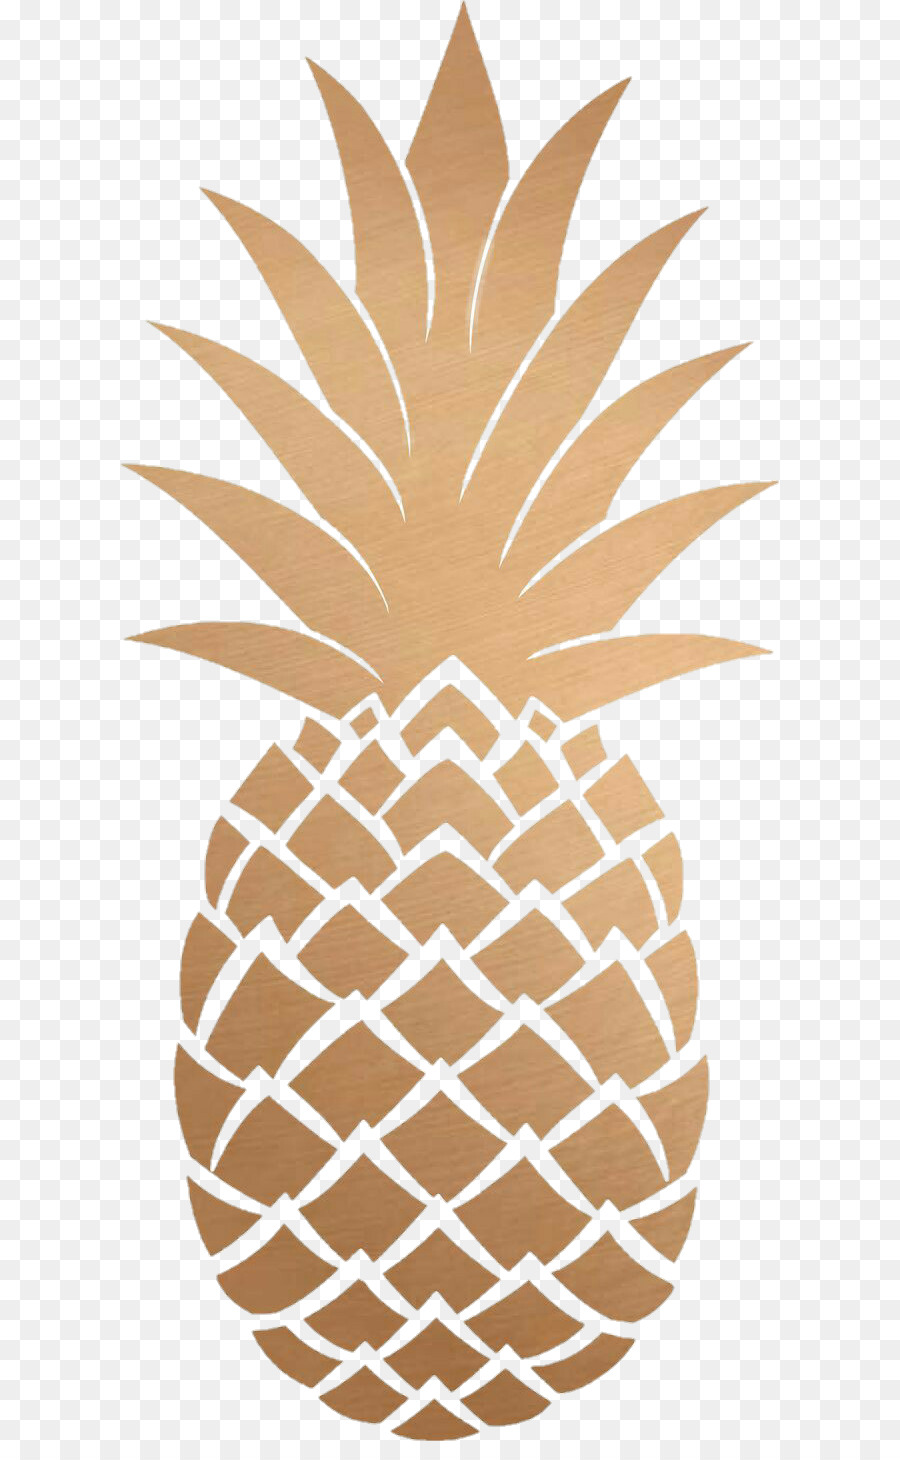 Pattern background plant ananas. Pineapple clipart gold pineapple